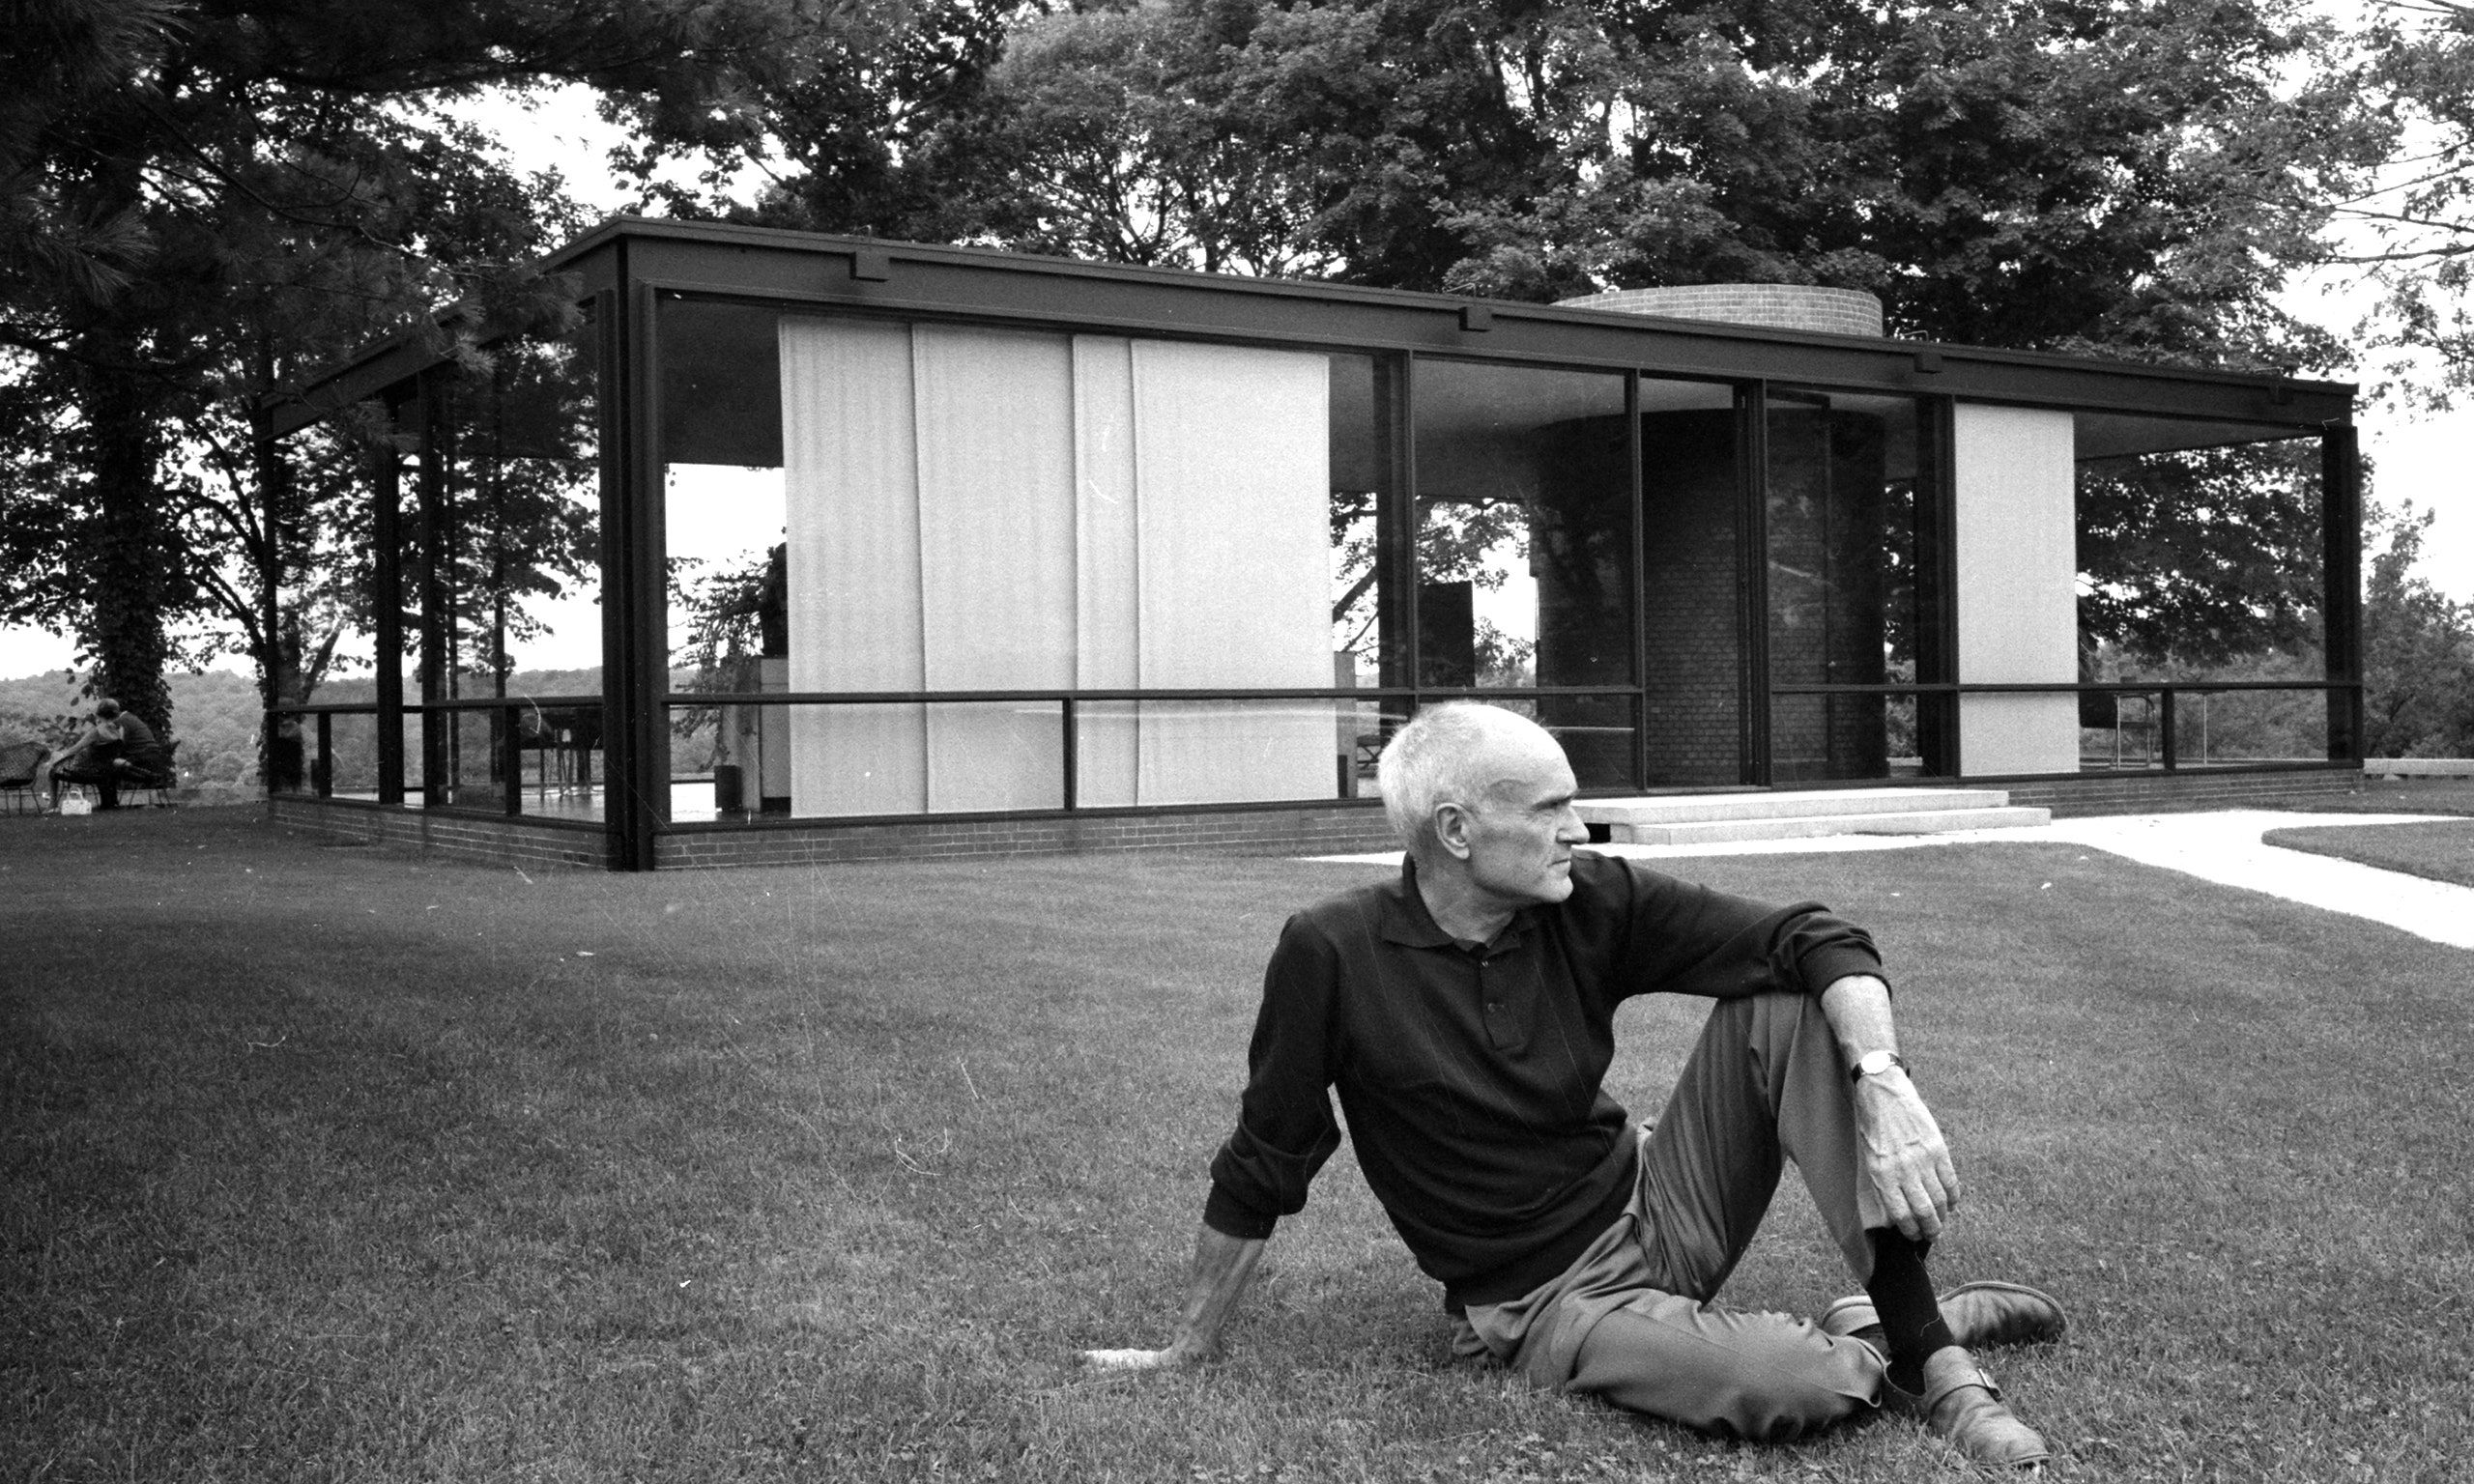 Philip Johnson, the Man Who Made Architecture Amoral